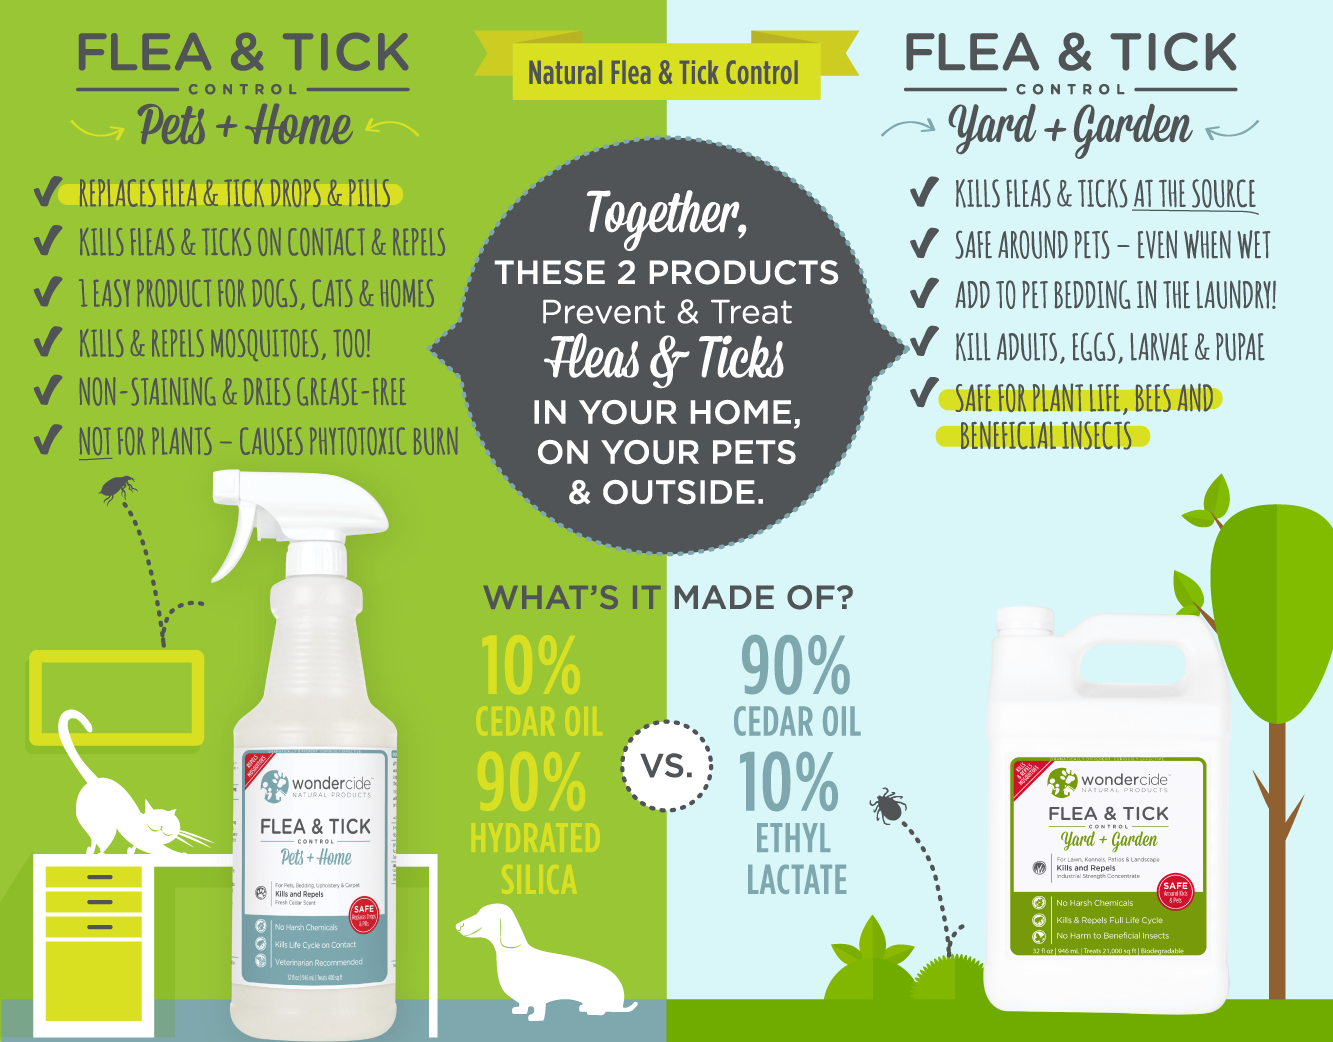 Wondercide Flea and Tick